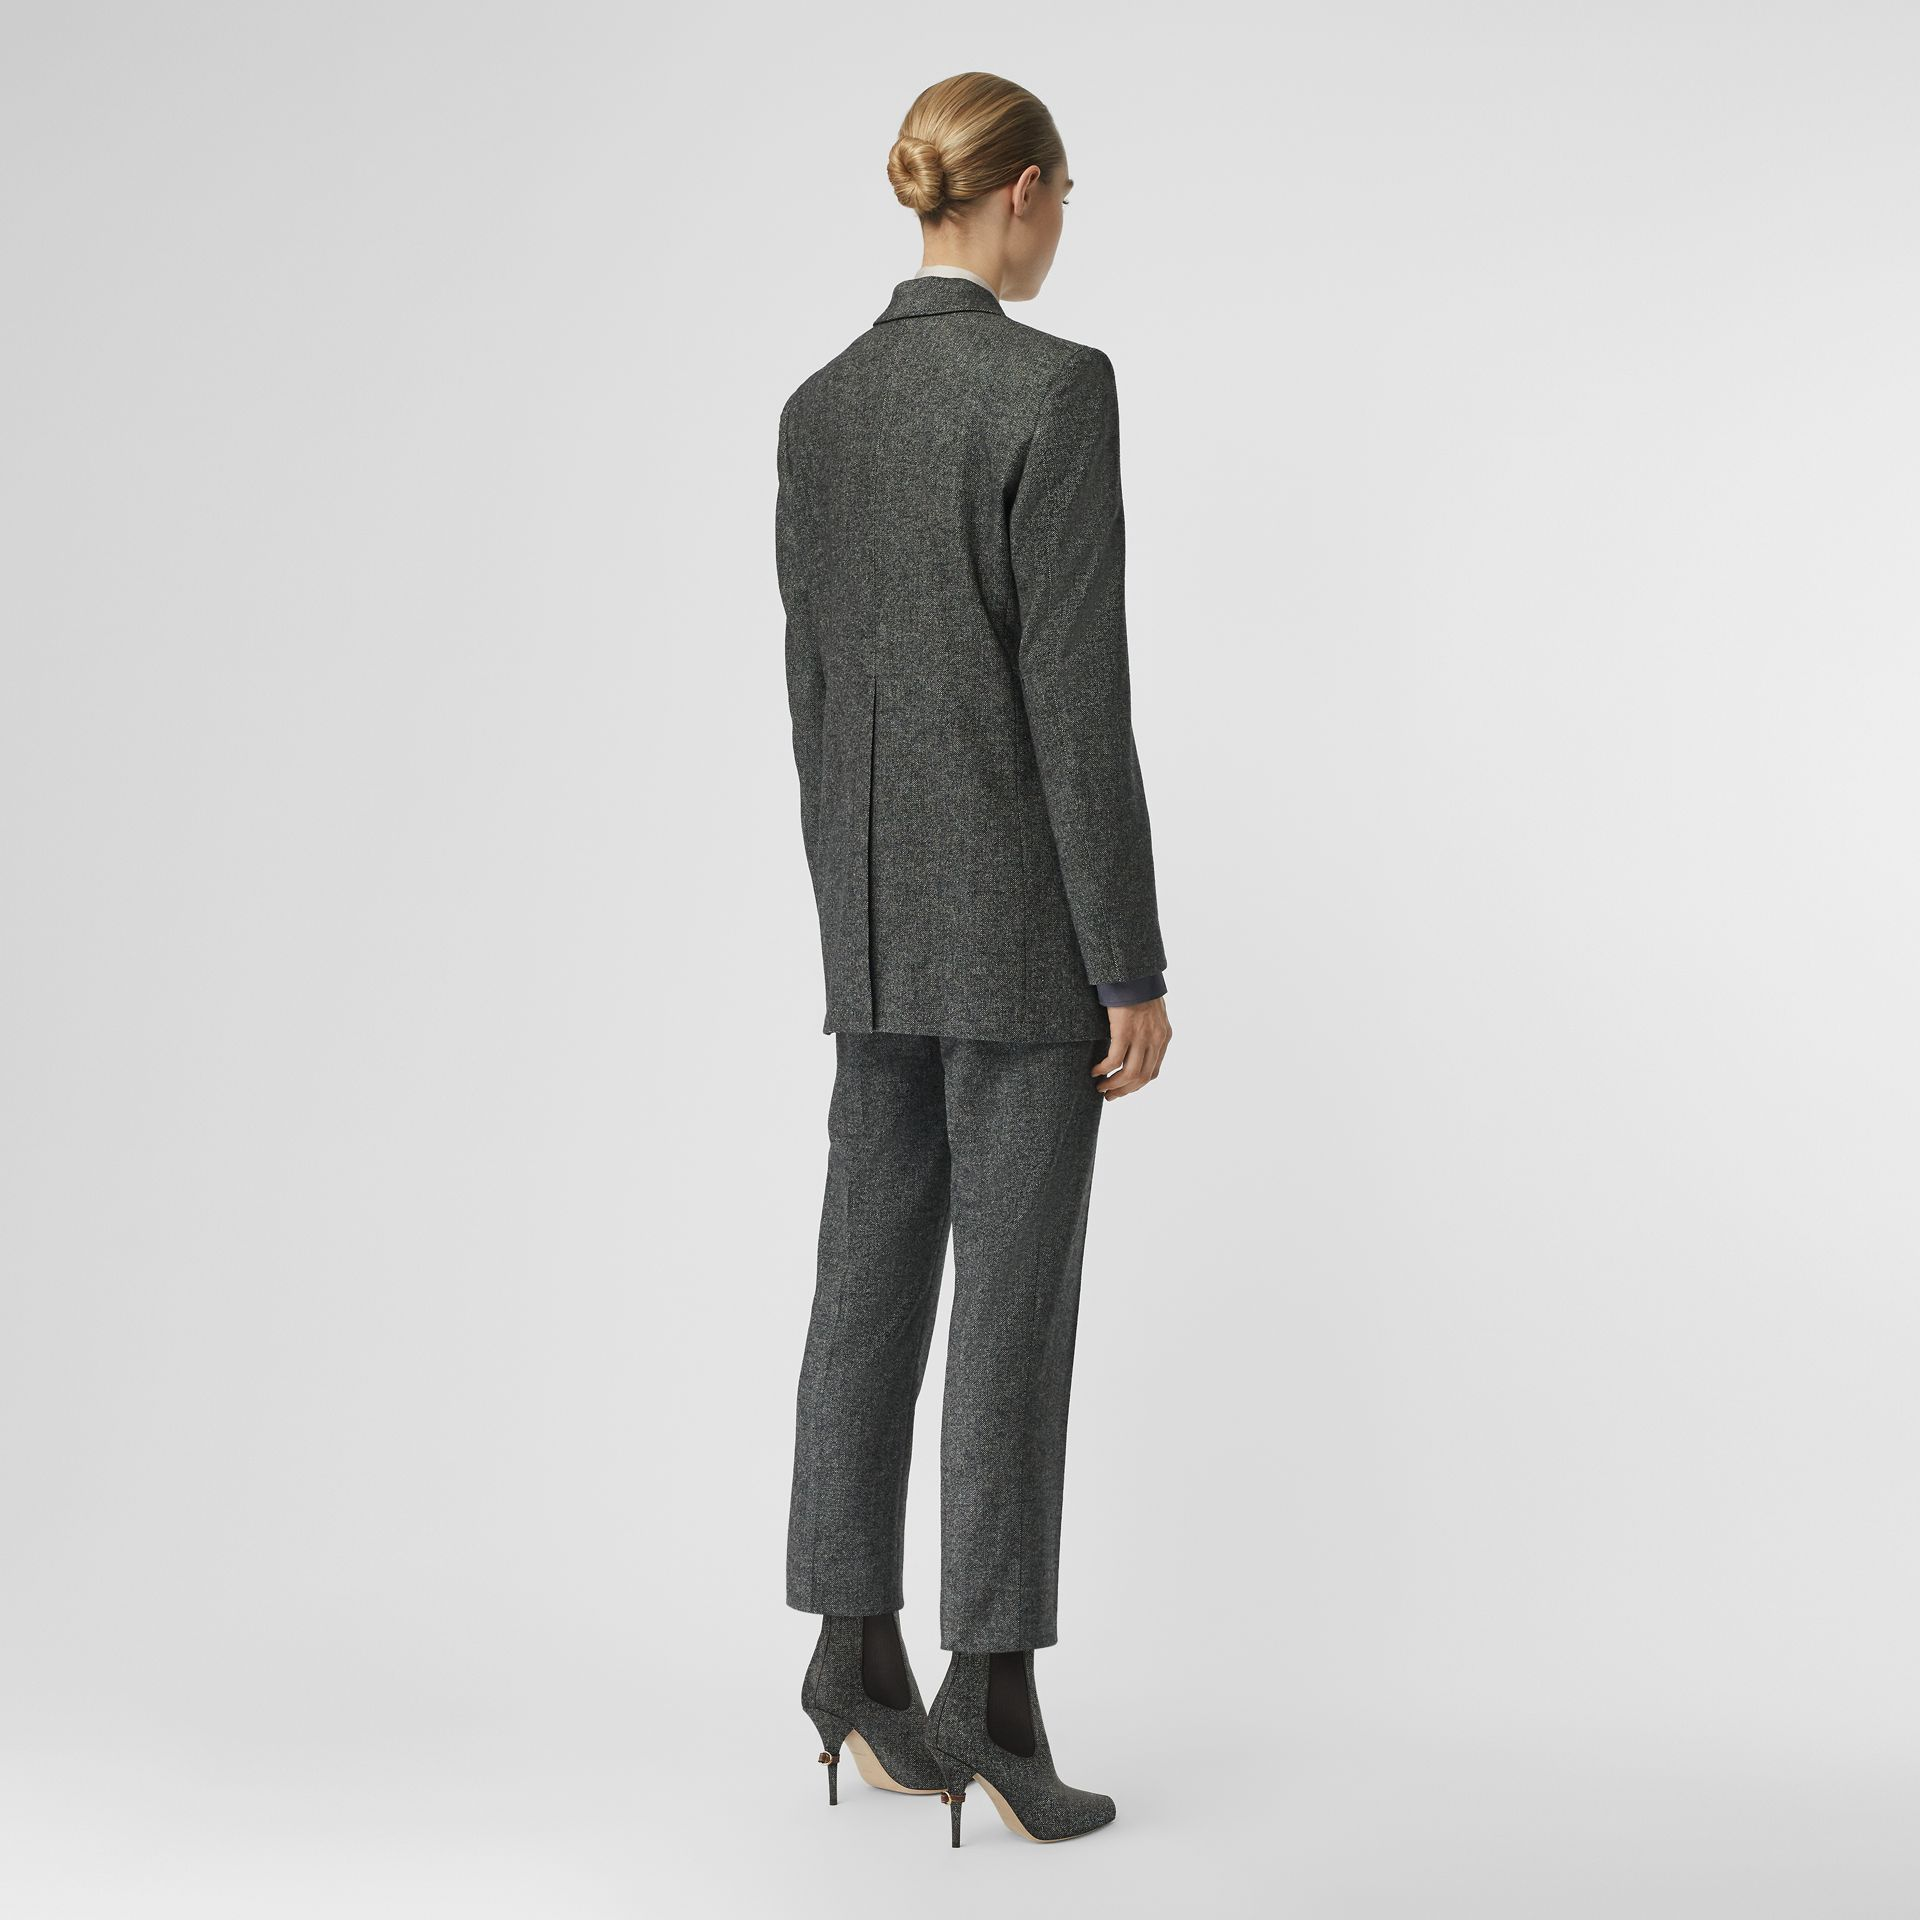 Wool Cashmere Tweed Tailored Jacket in Black Melange - Women | Burberry United Kingdom - gallery image 2